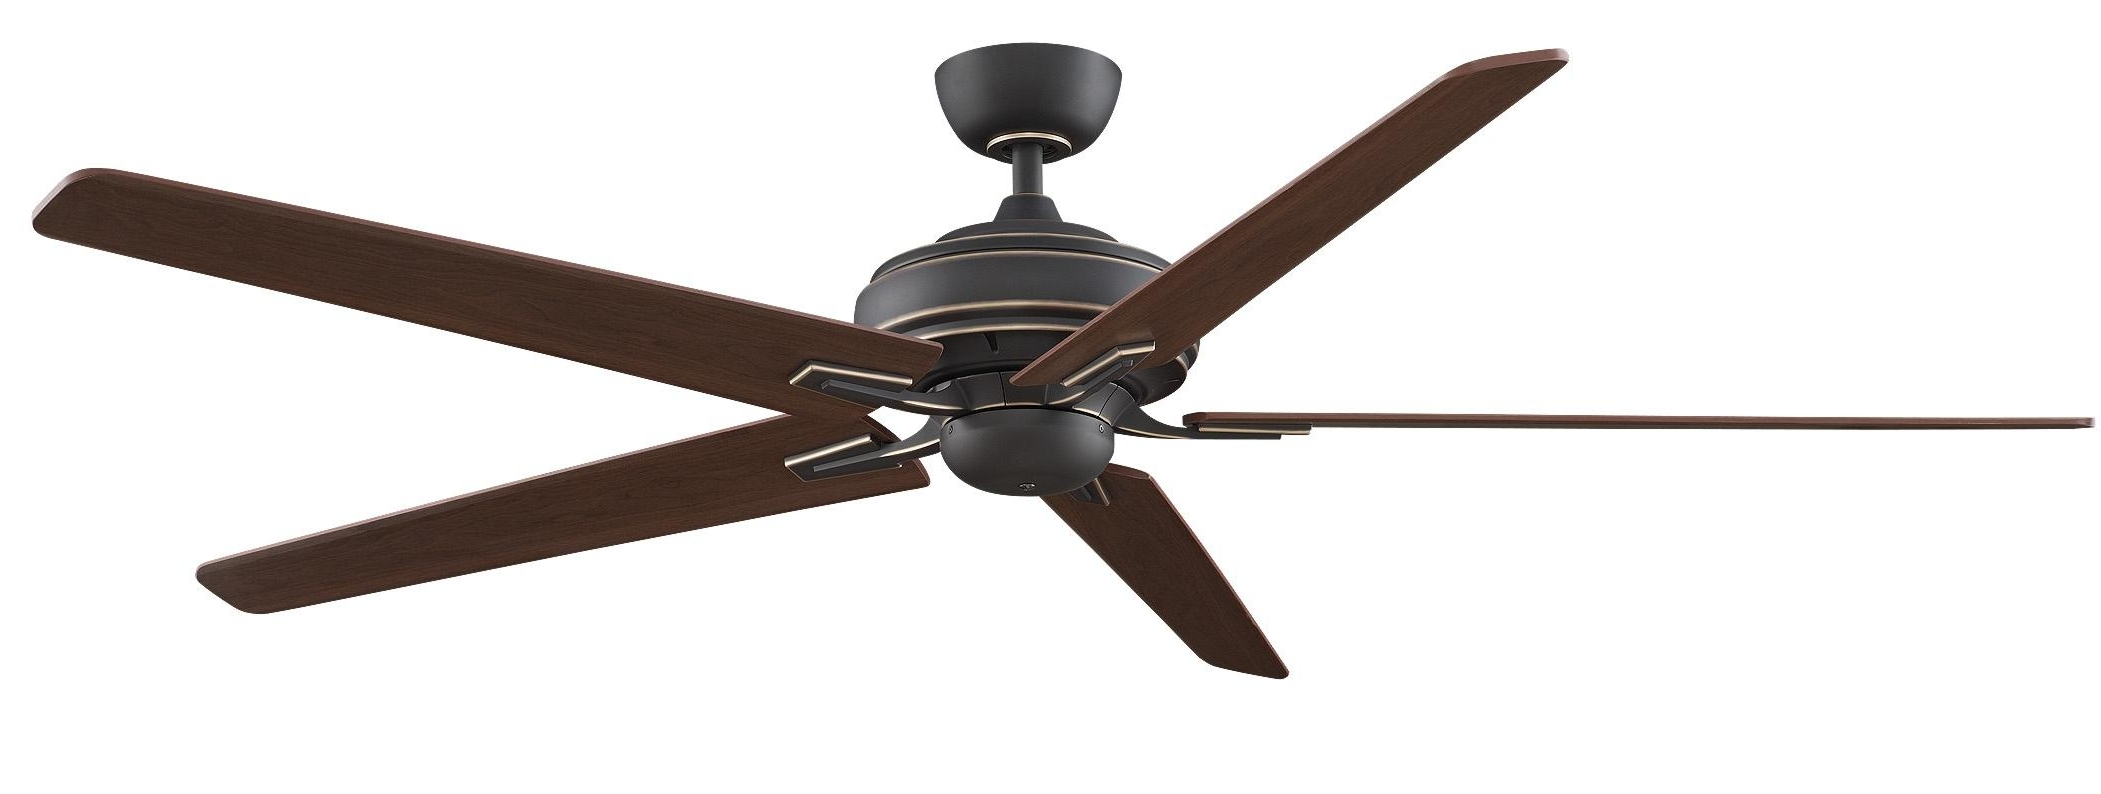 Brown Outdoor Ceiling Fan With Light In 2019 Inch Outdoor Ceiling Fan With 60 Ceiling Fan With Light (View 3 of 20)